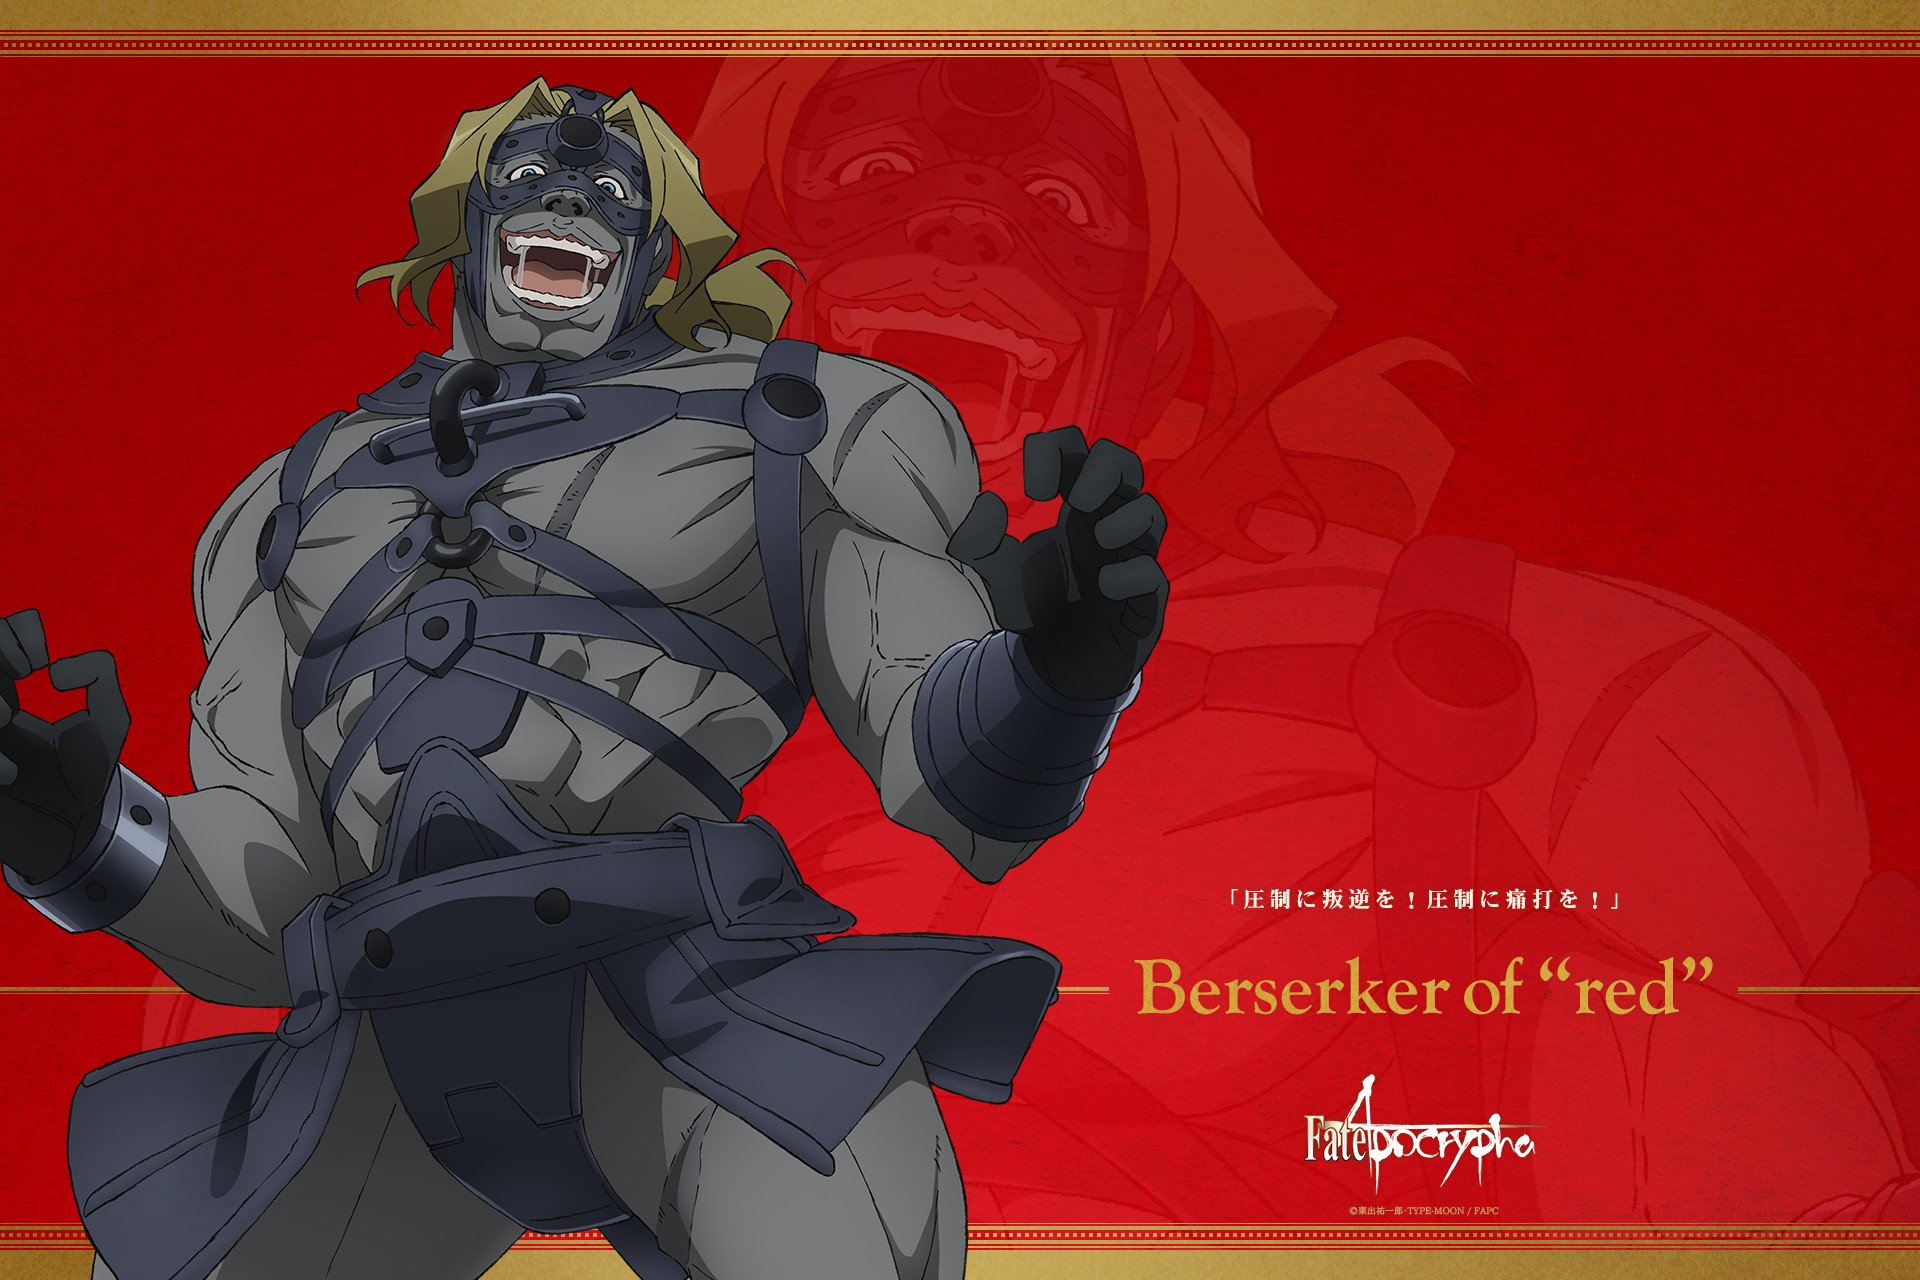 Anime - Fate/Apocrypha Berserker of Red (Fate/Apocrypha) Wallpaper